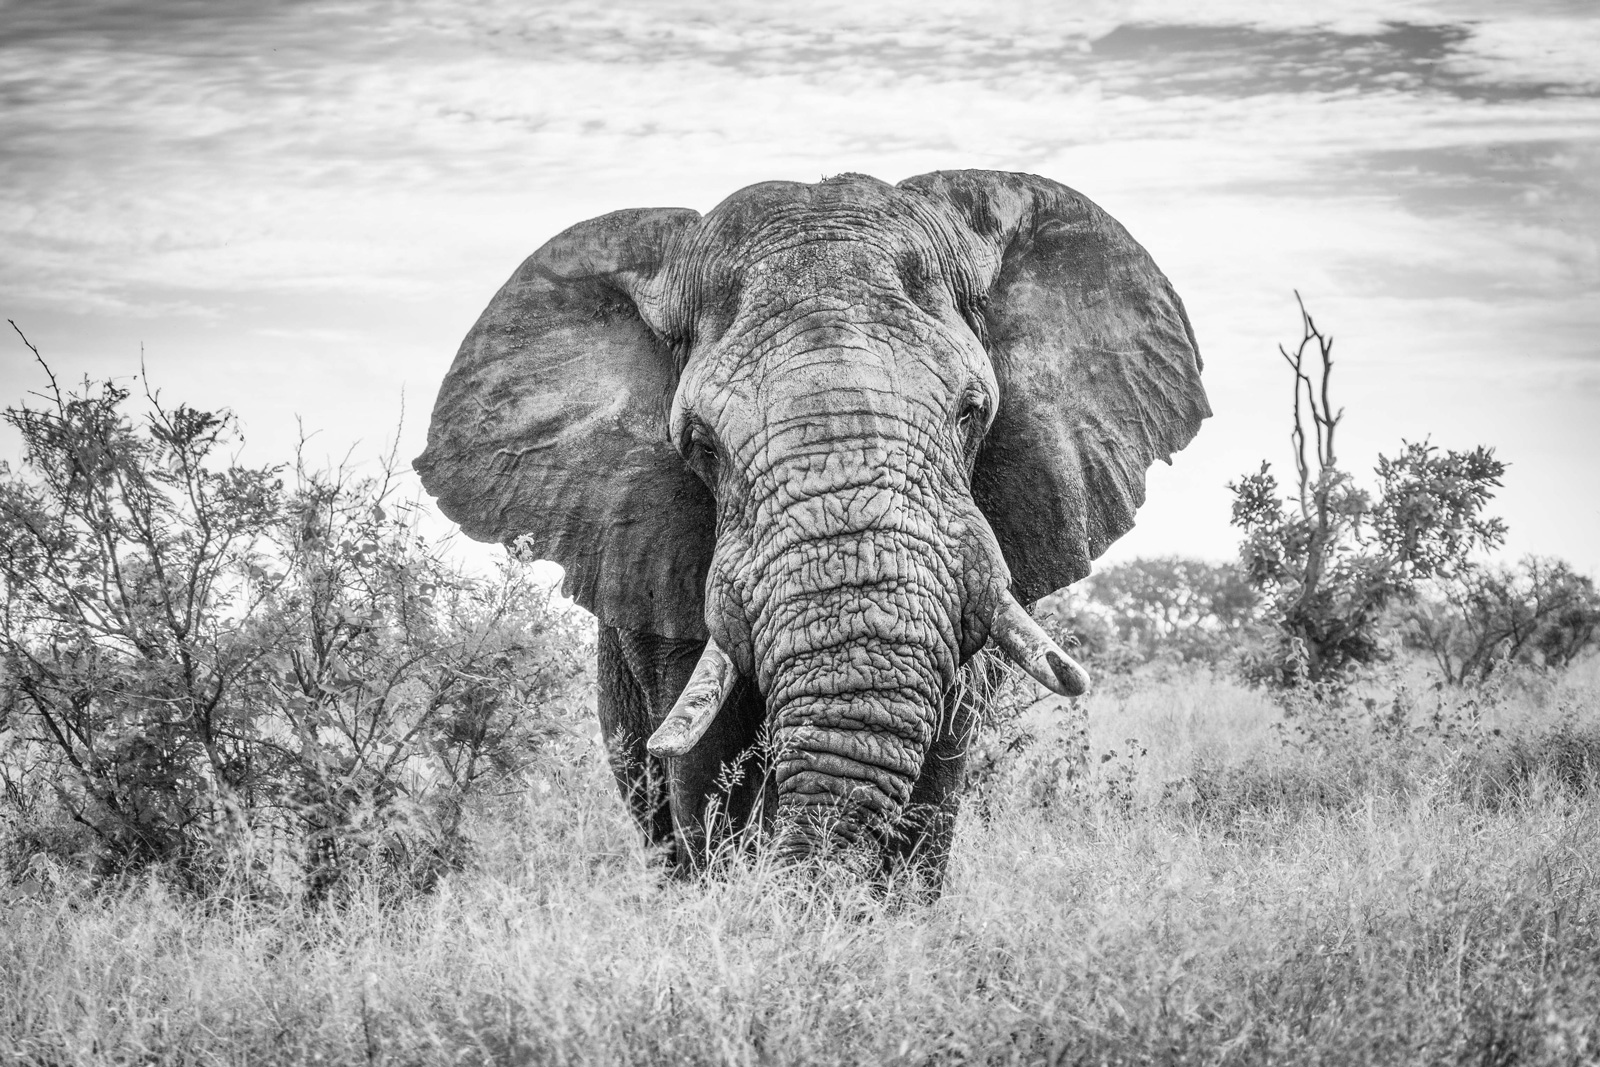 A large elephant approaches in Kruger National Park, South Africa ©Jennifer Ludlum